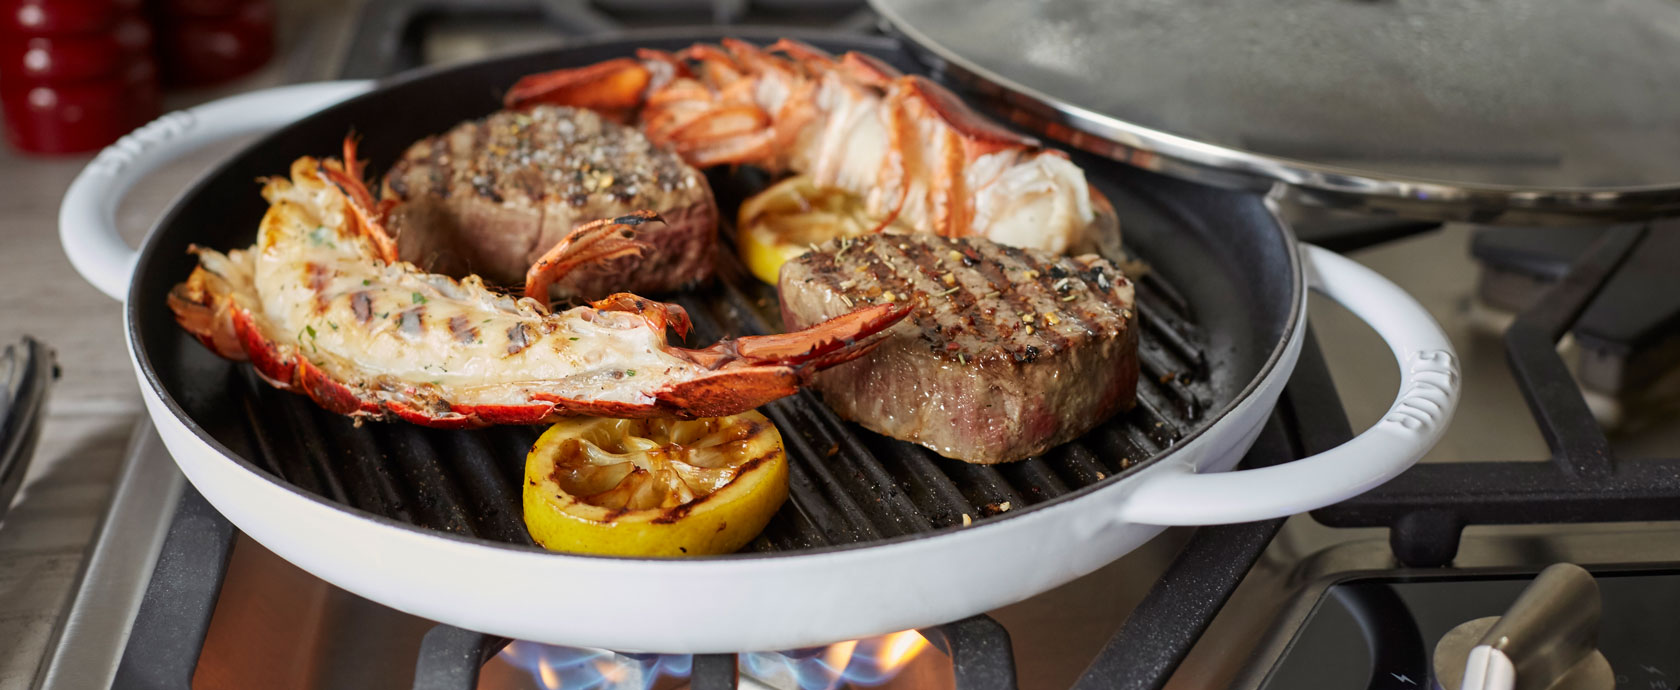 Staub steam grill pan with steak and lobster